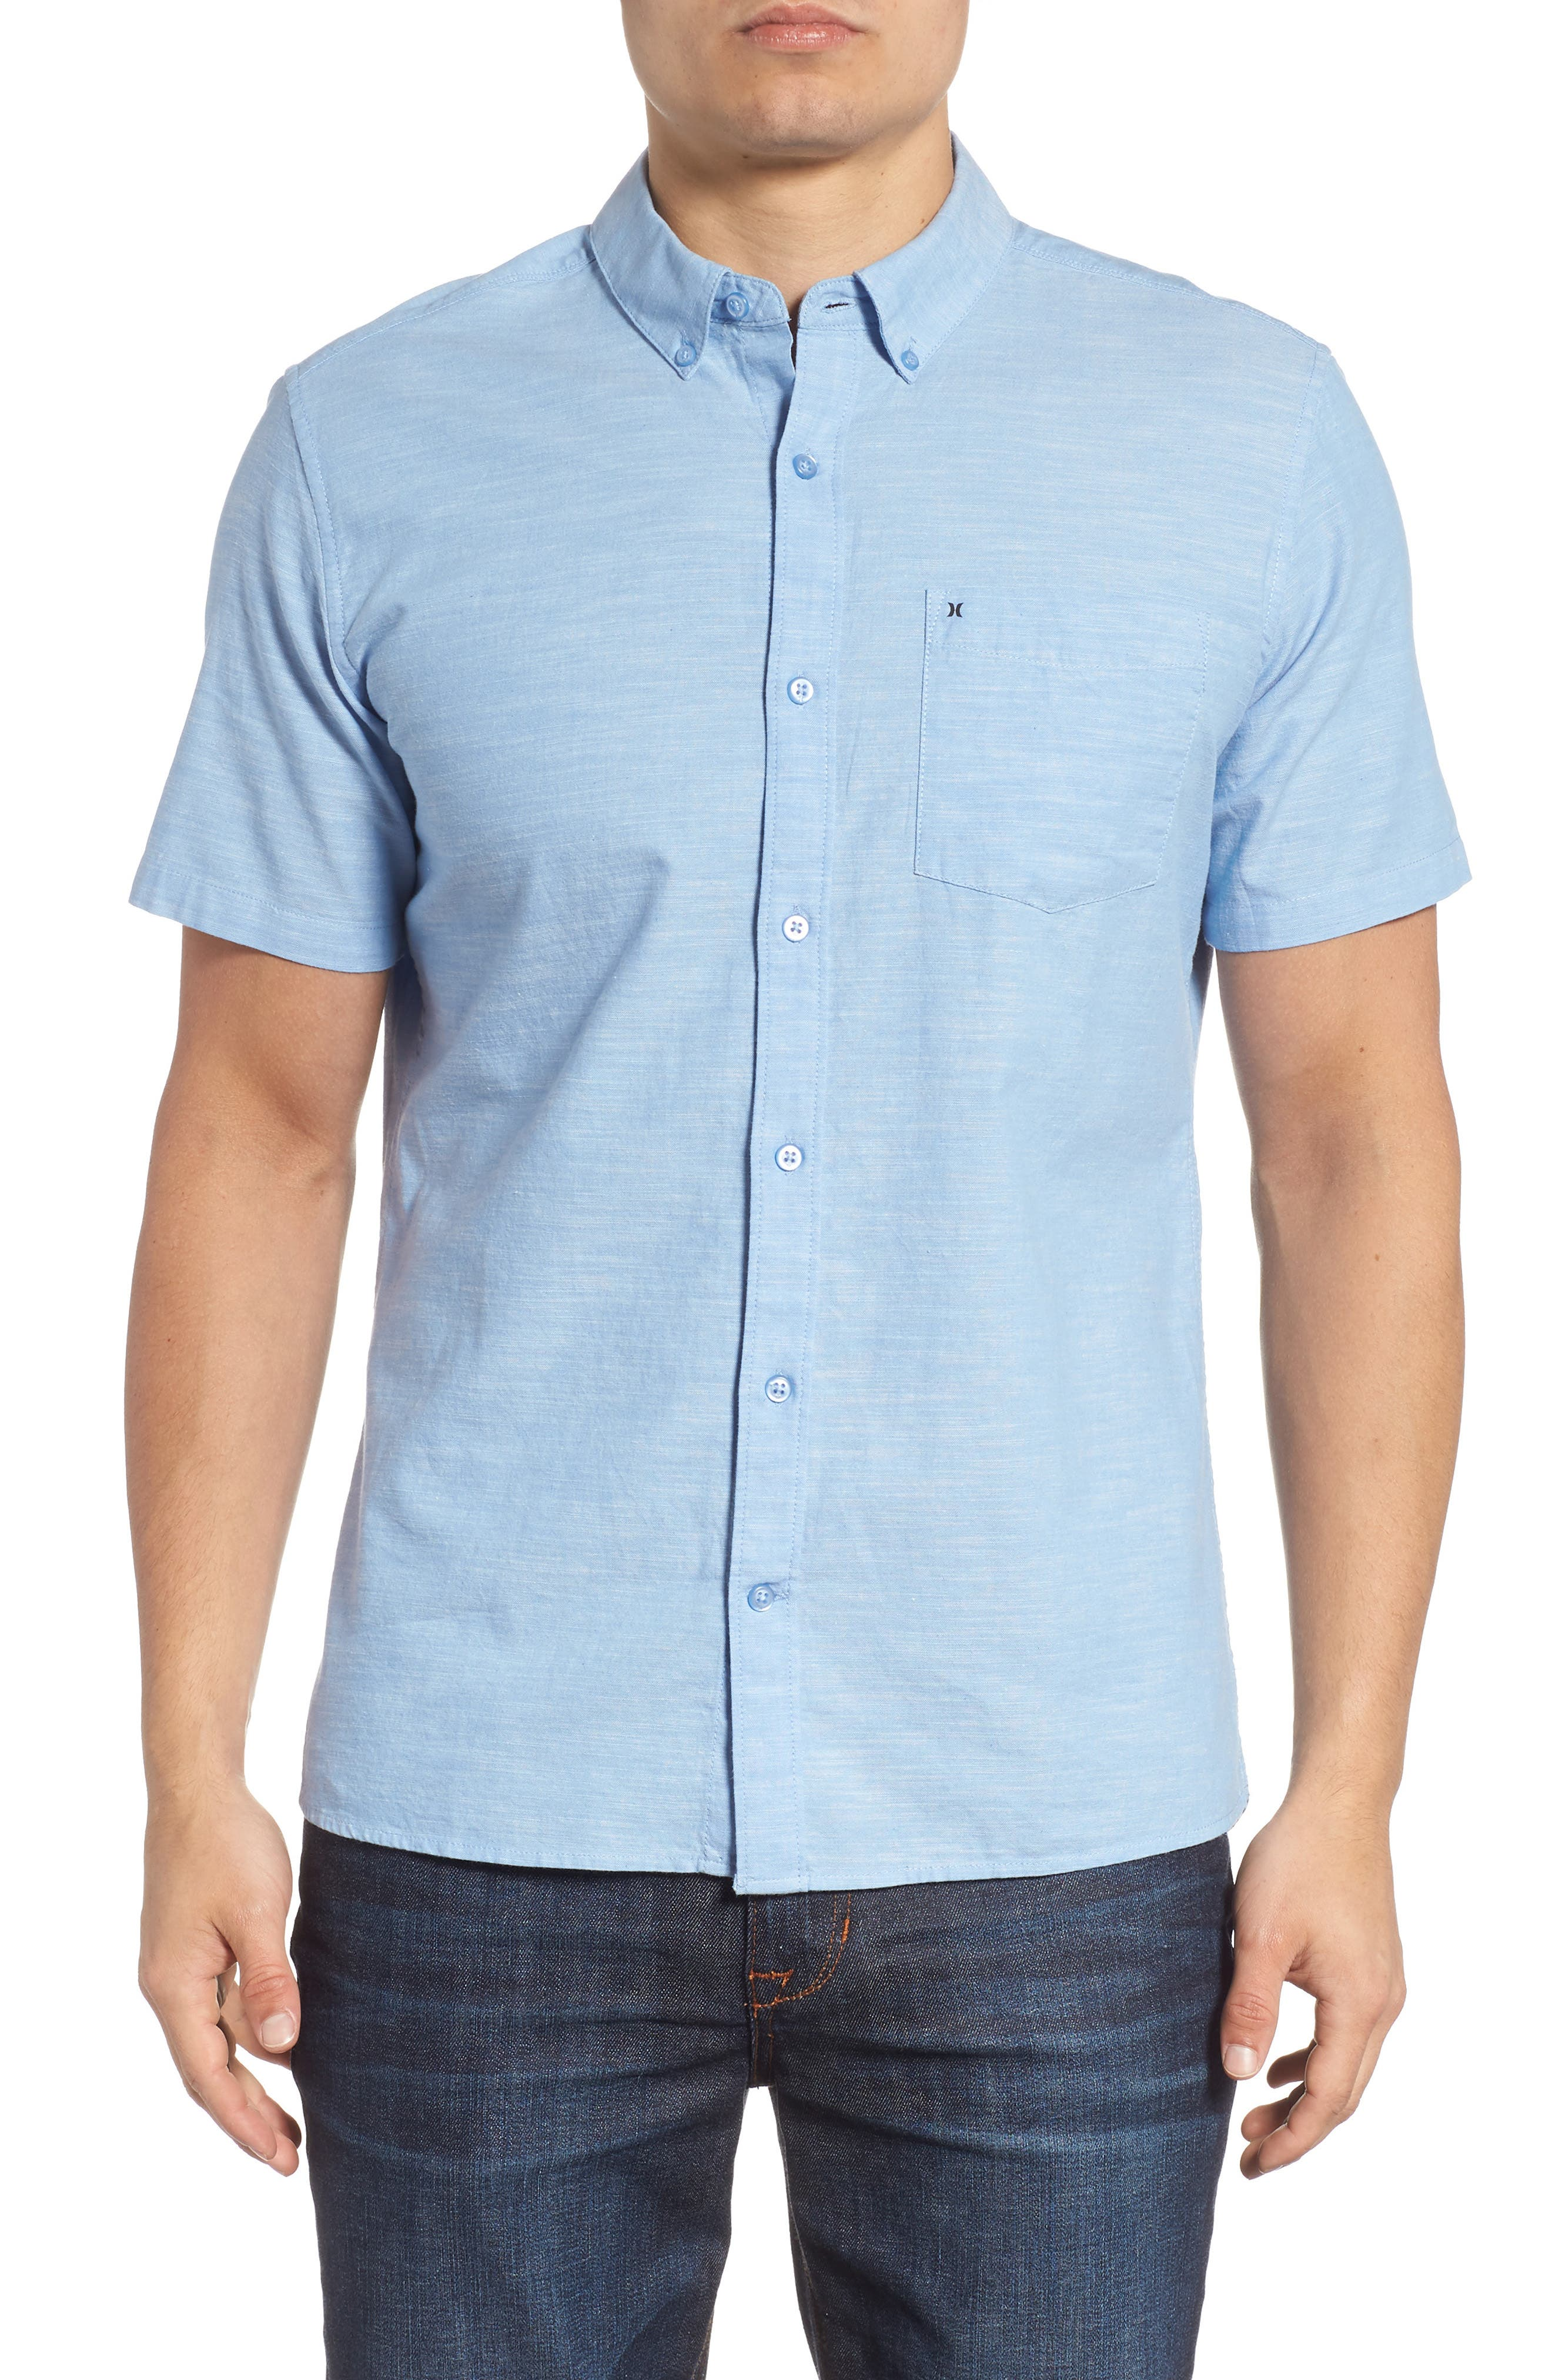 One & Only 2.0 Woven Shirt,                             Main thumbnail 1, color,                             BLUE OX